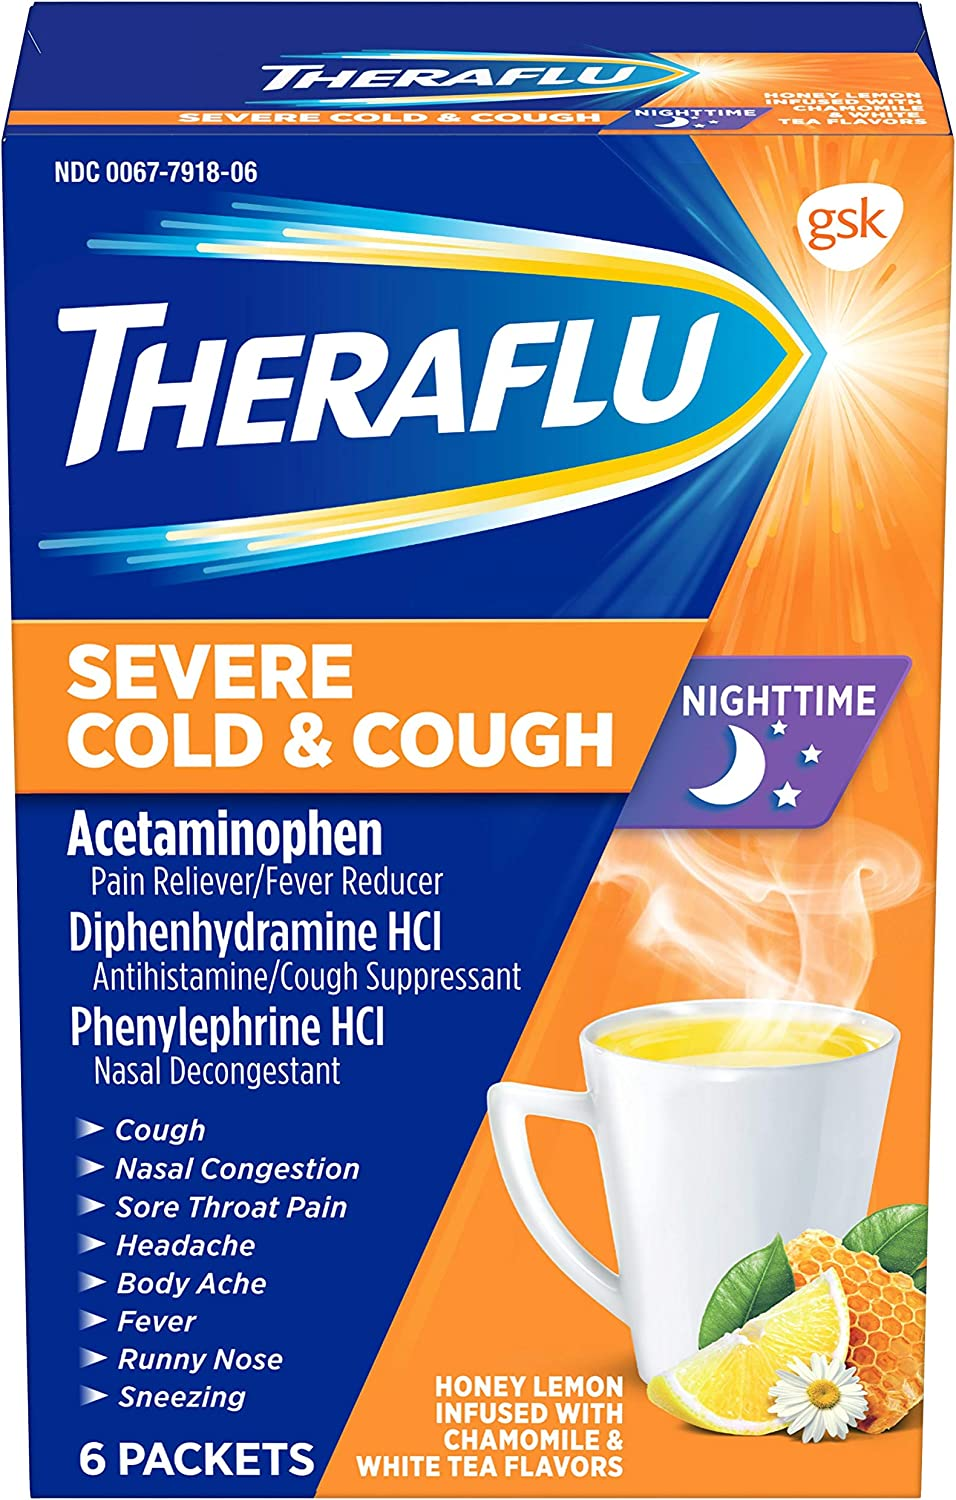 Theraflu Severe Cold and Cough Medicine for Adults and Children 12+, Multisymptom Nighttime Cold and Flu Relief Powder Packets, Honey Lemon Infused with Chamomile and White Tea Flavors - 6 Count: Health & Personal Care